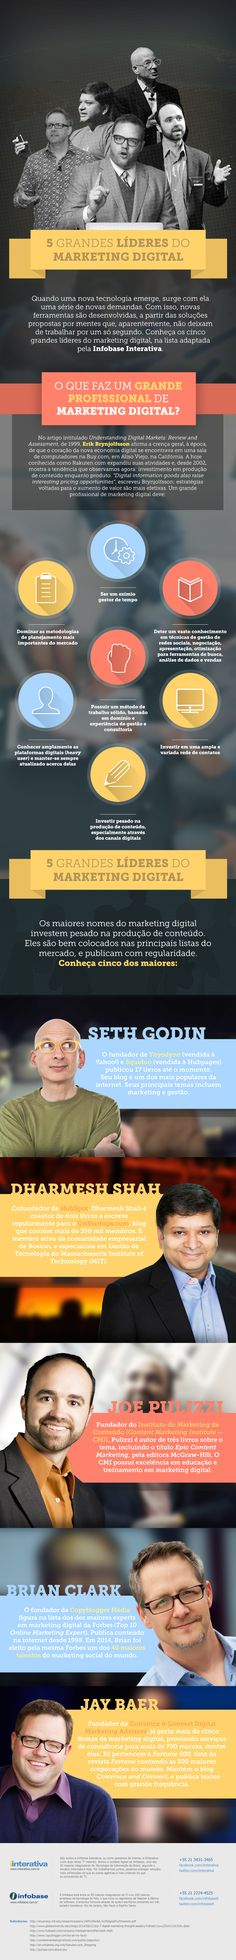 5 Grandes Líderes de Marketing Digital [infografico]